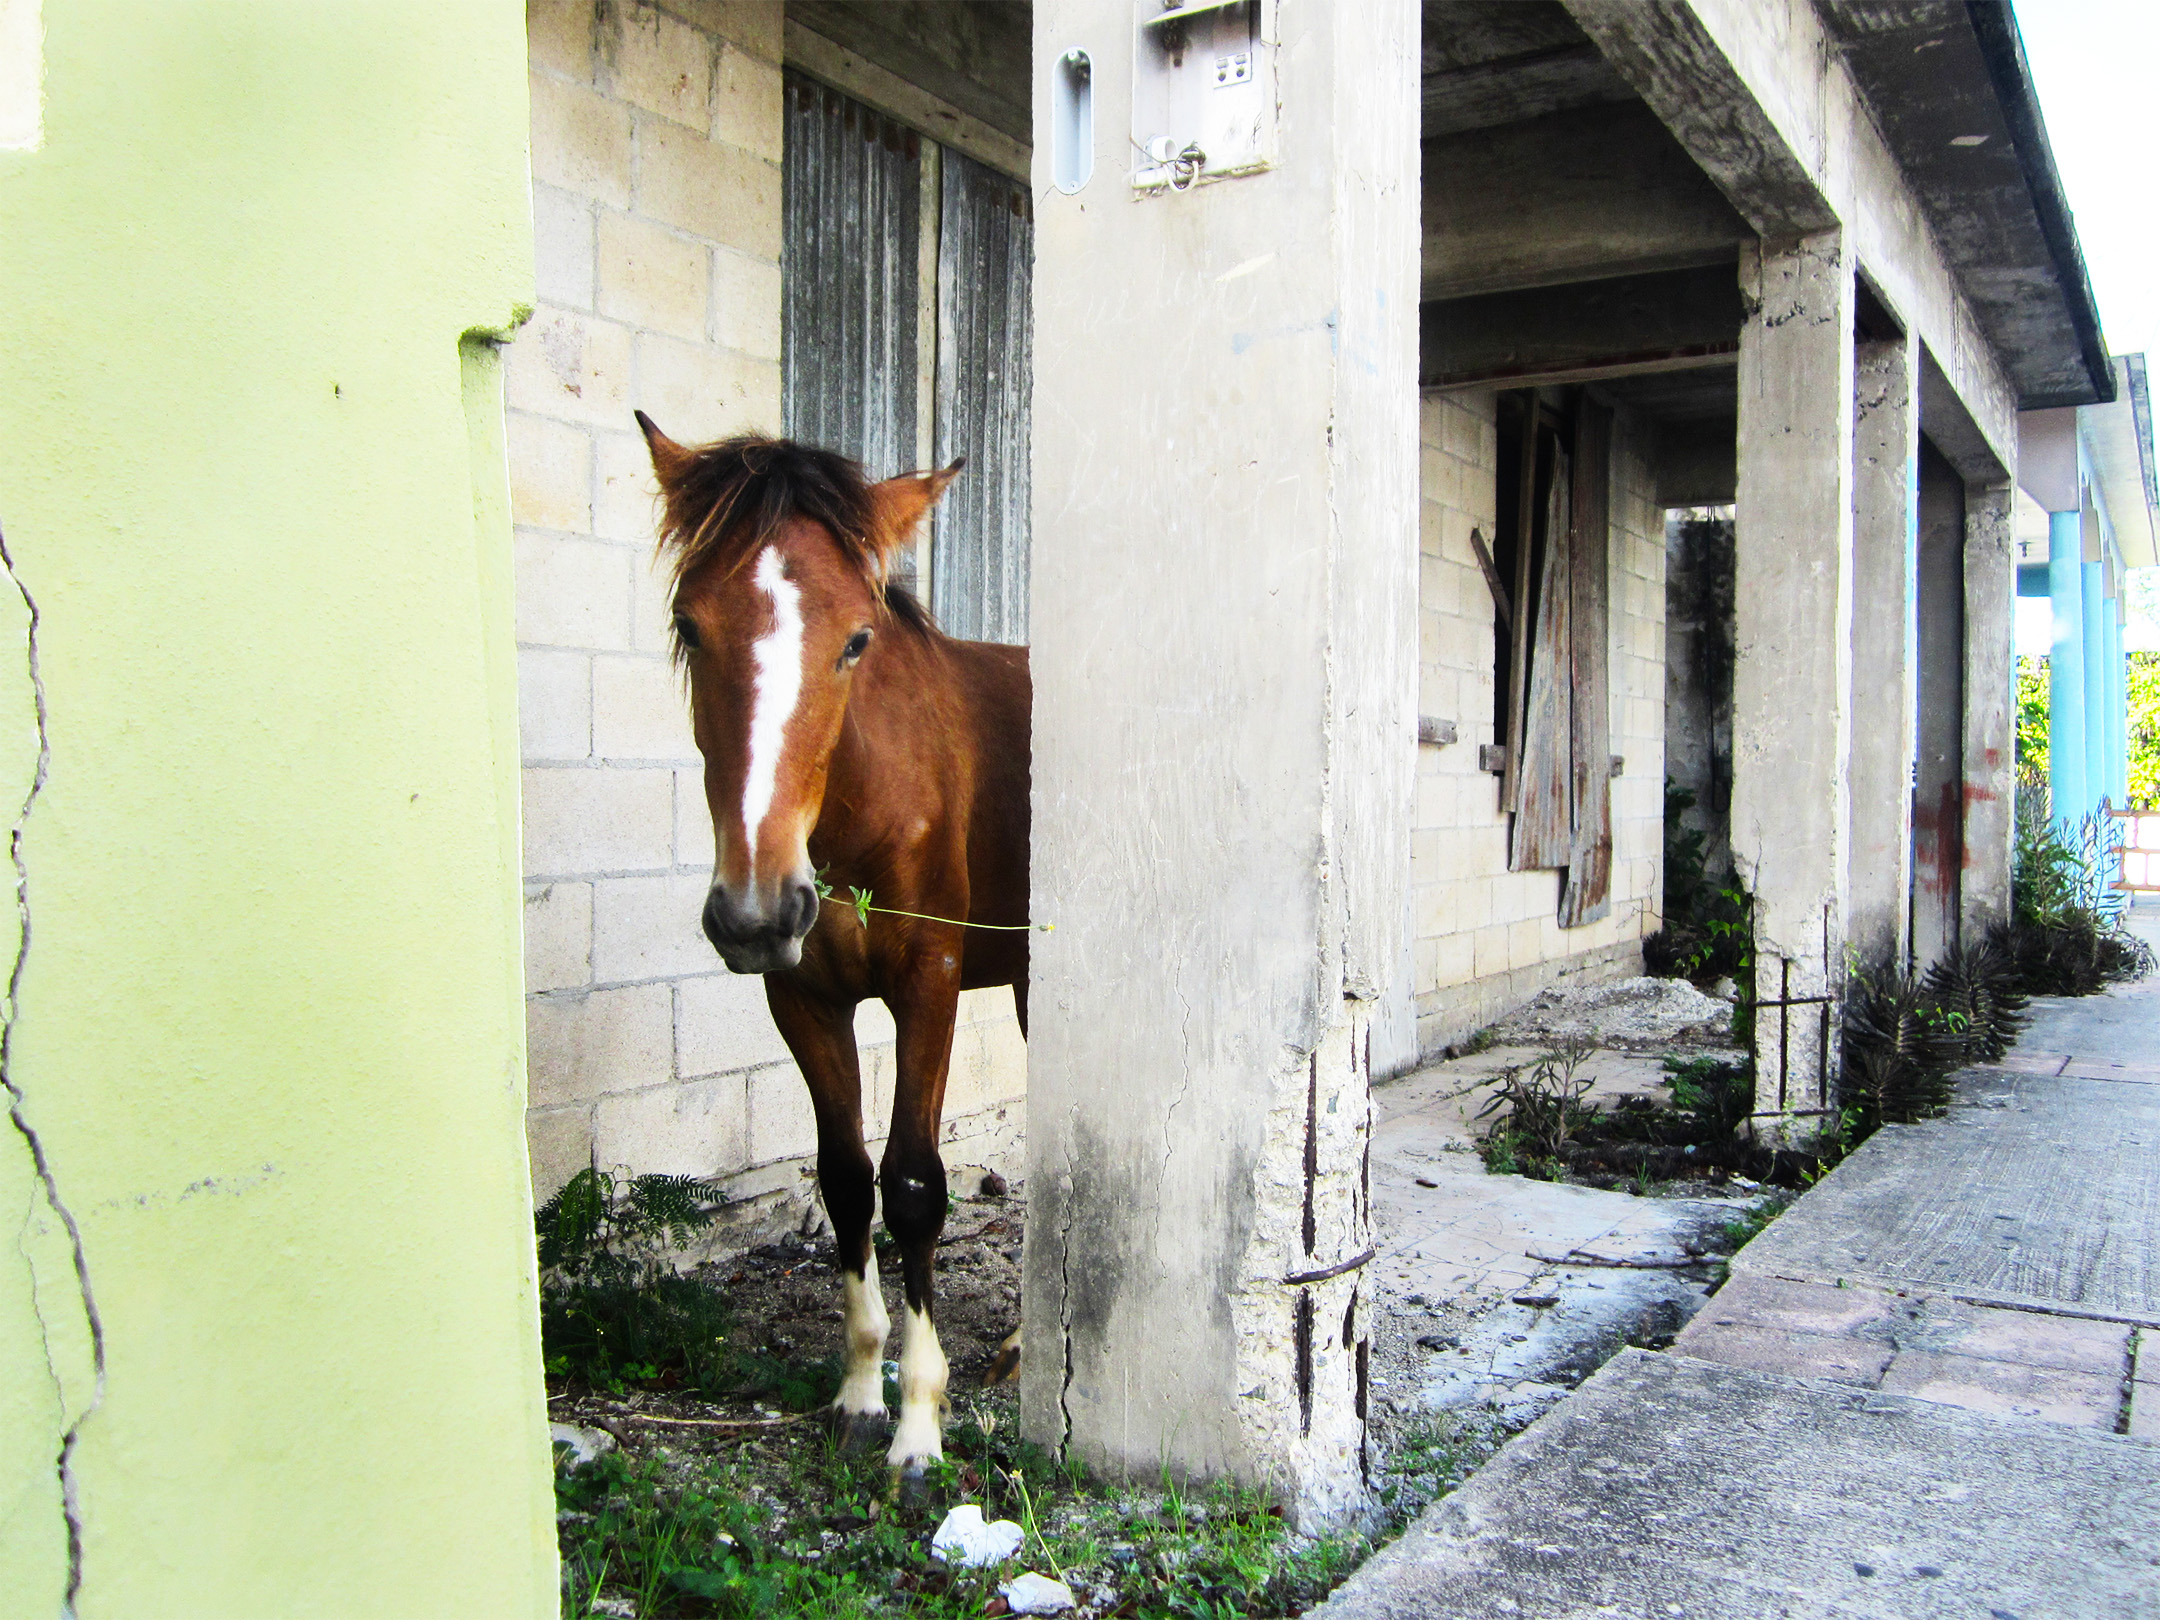 Horses Roam Free in the Streets of Isla de Vieques